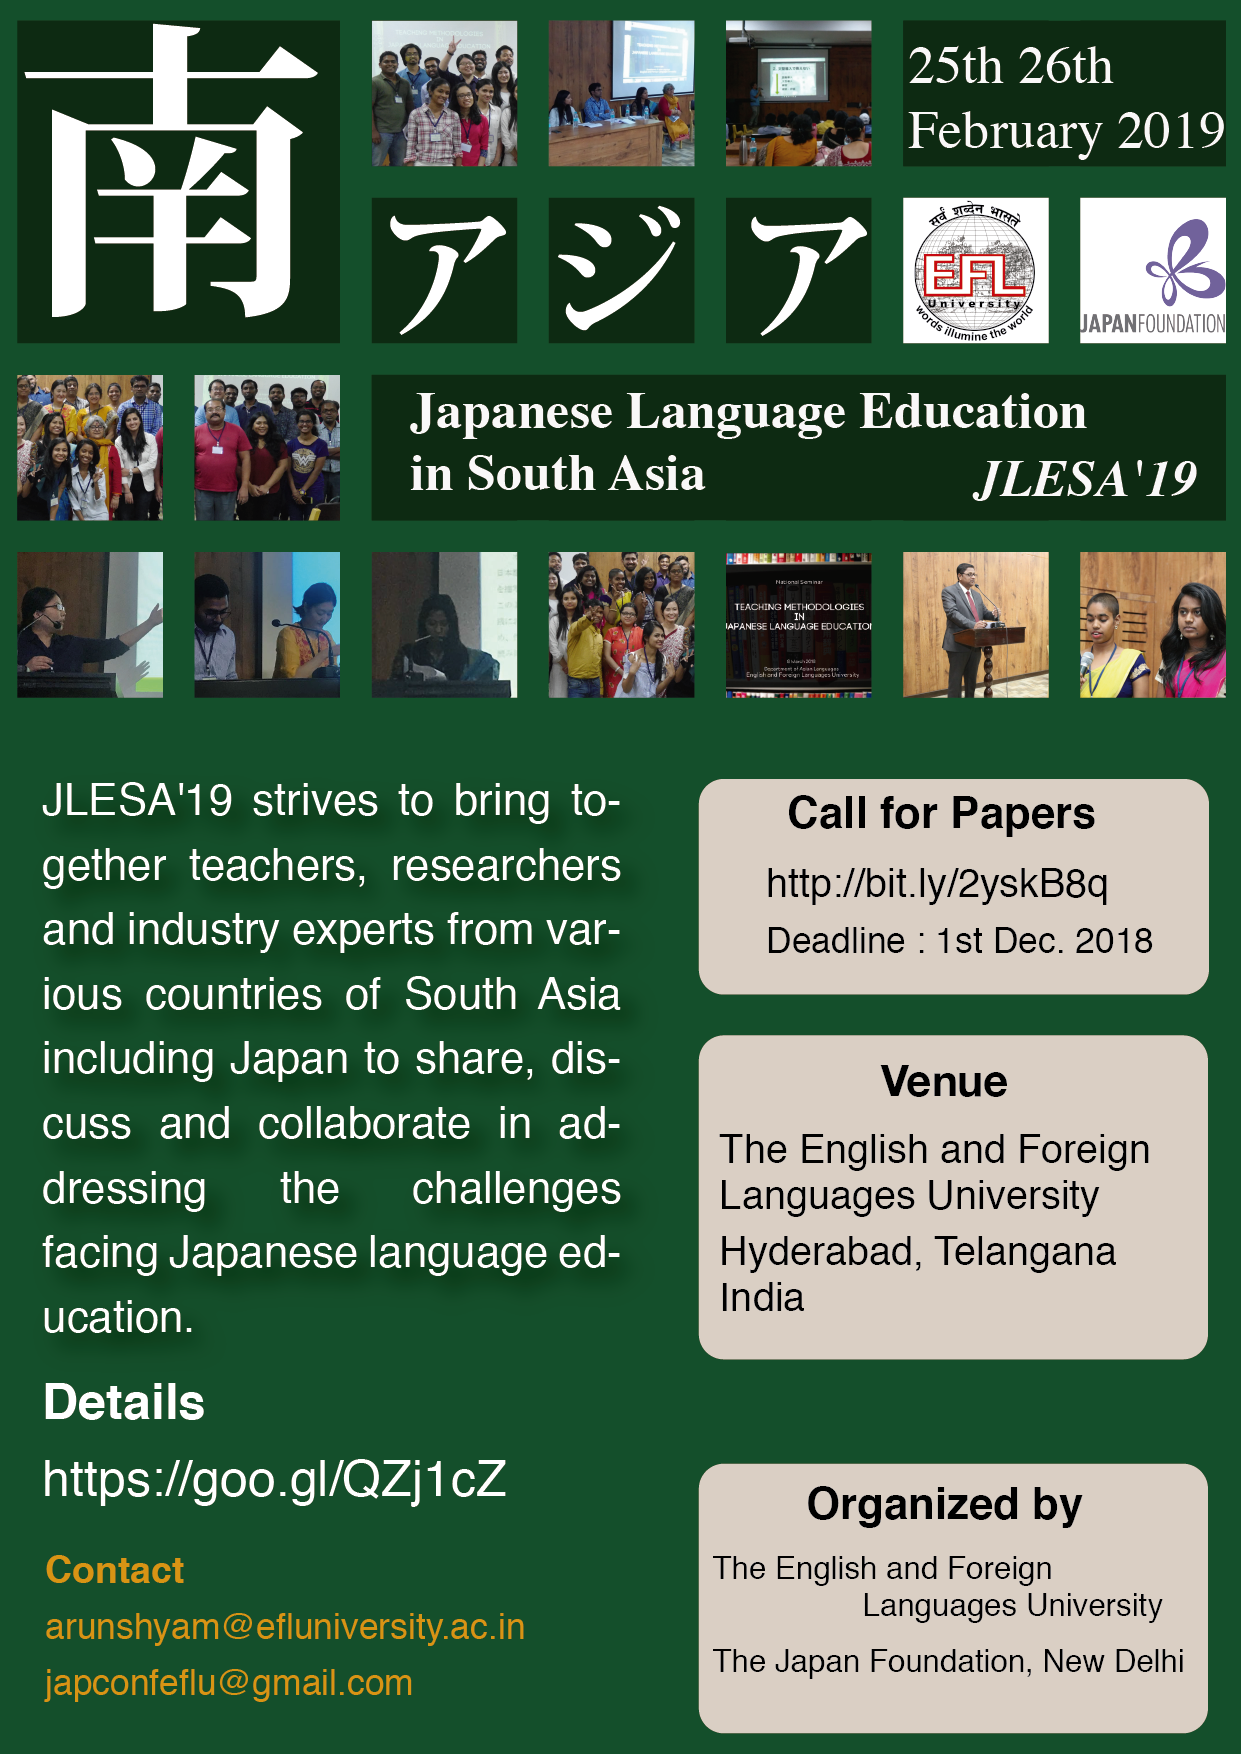 Call for Papers: International Conference on Japanese Language Education in South Asia